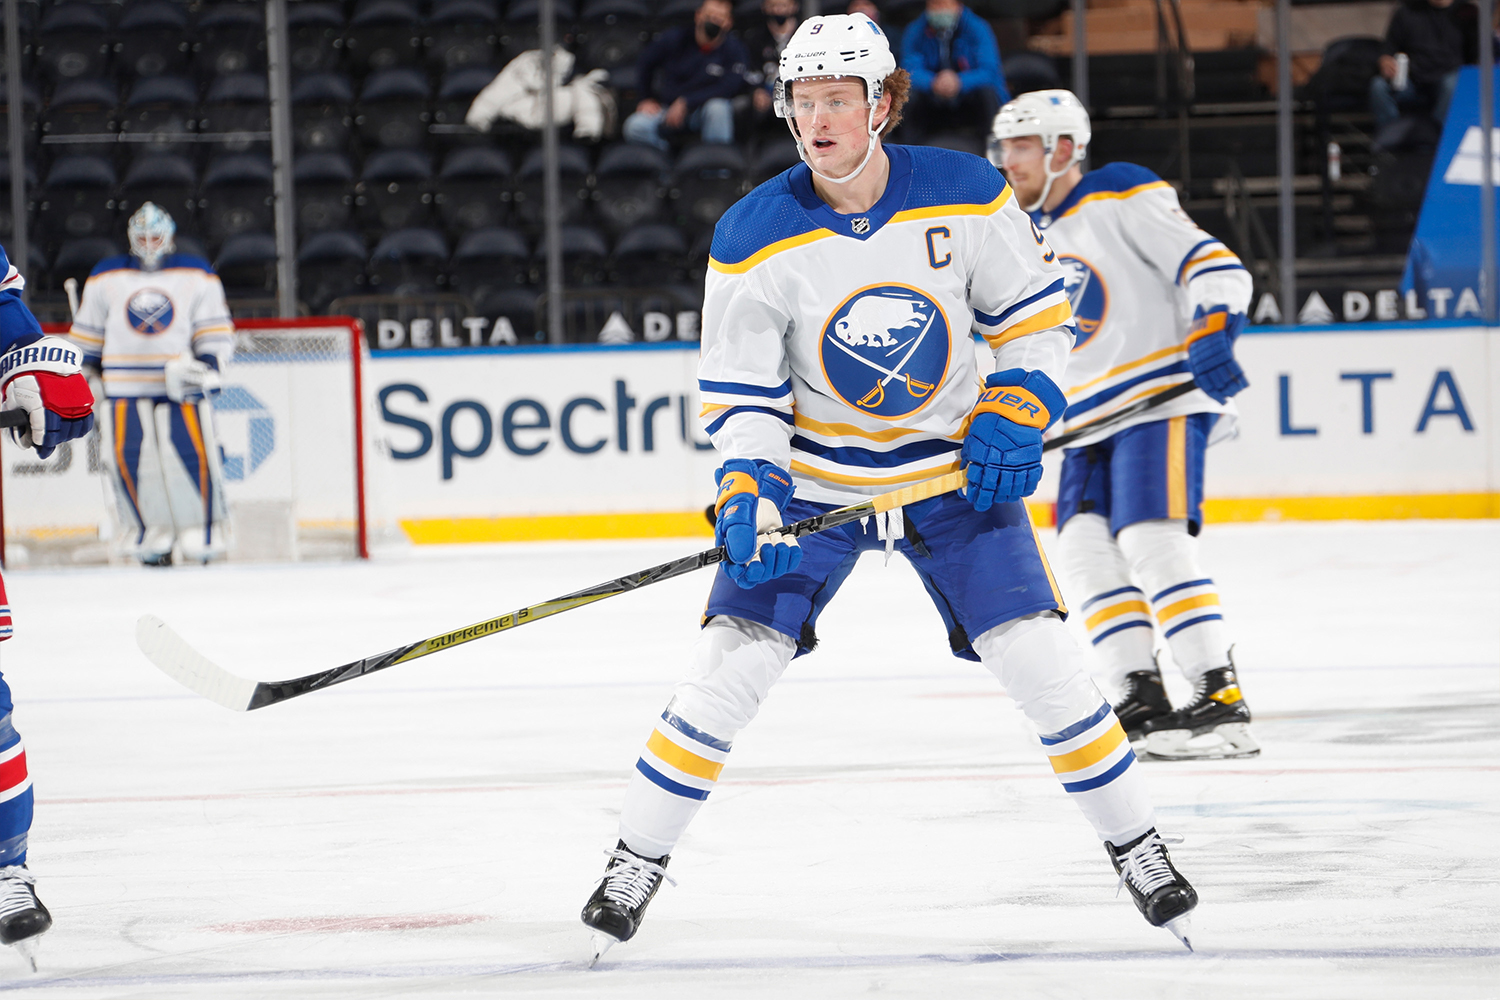 Jack Eichel #9 of the Buffalo Sabres skates against the New York Rangers at Madison Square Garden on March 2, 2021